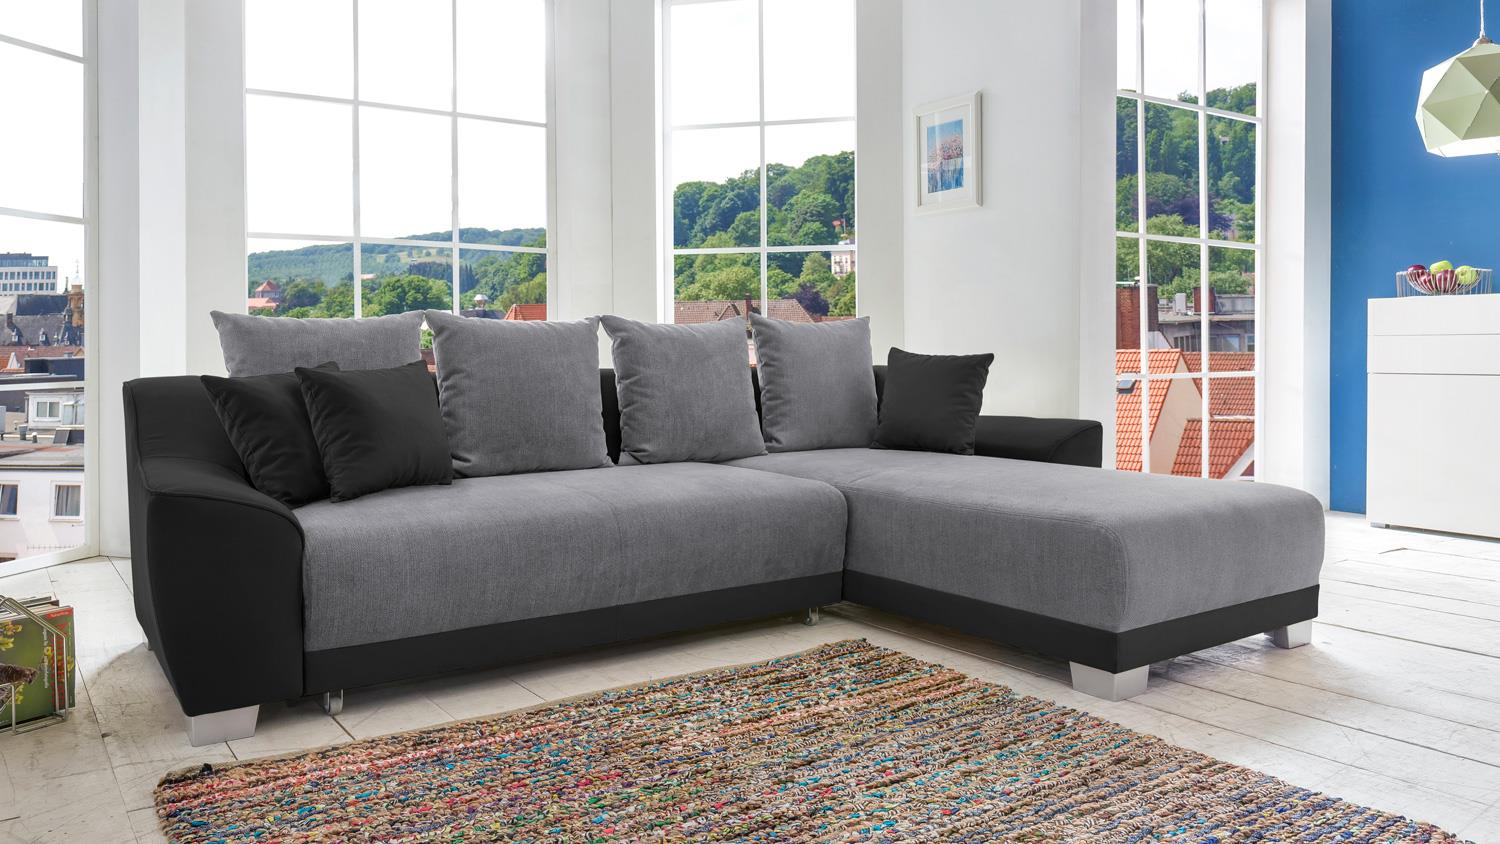 Ecksofa marida stoff schwarz anthrazit inkl bettfunktion for Stoff ecksofa